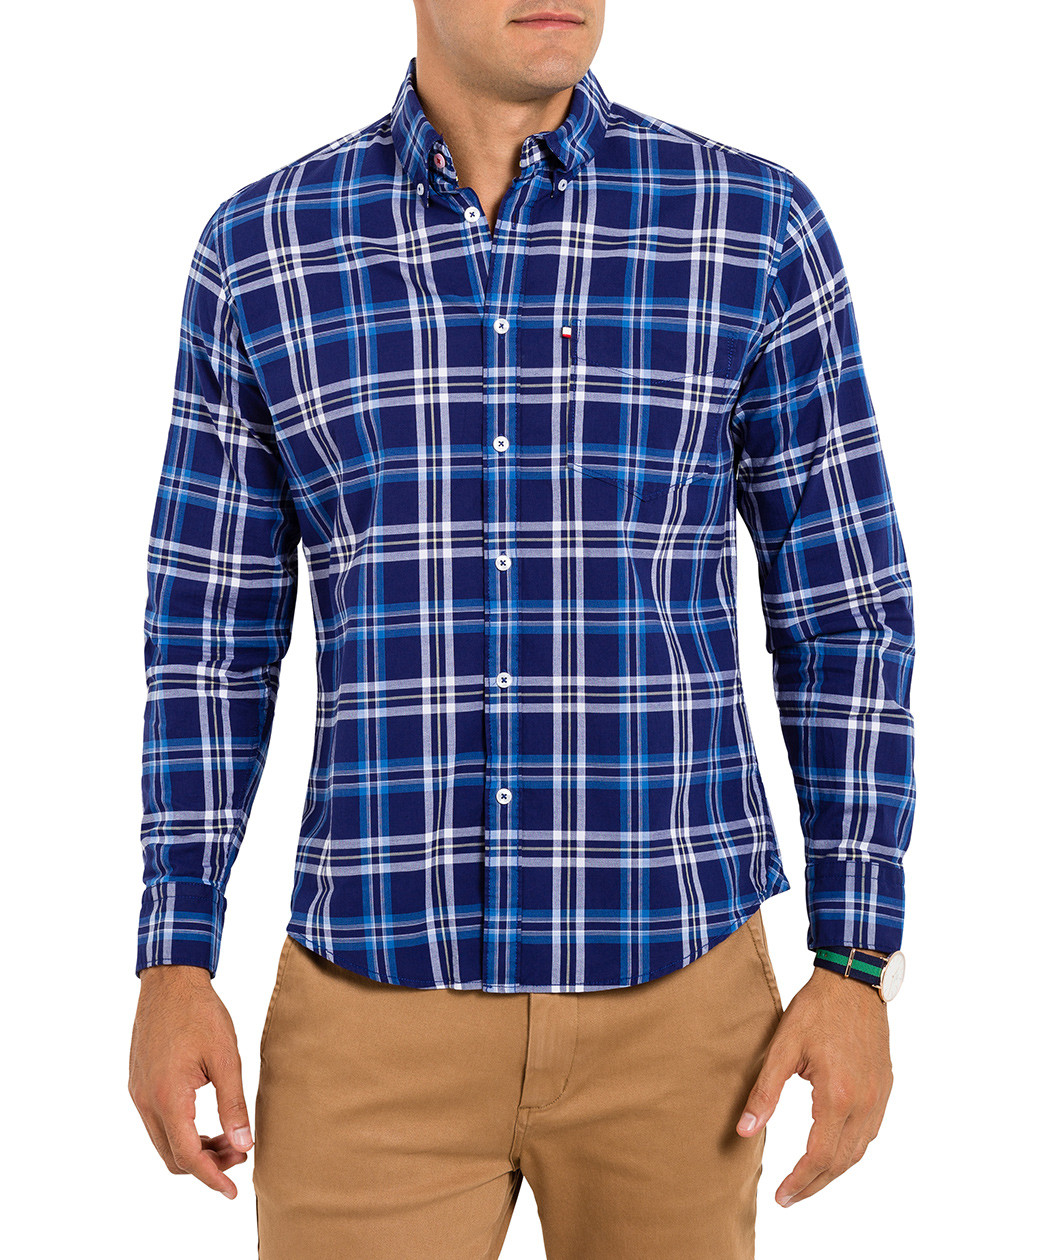 Van Heusen Mens Big & Tall Wrinkle Free Grid Print Shirt. Van Heusen dedicates itself to providing high quality, stylish attire. Short sleeve wrinkle free shirt features a button up front, chest pocket, a button down point collar, and a grid plaid print. more.